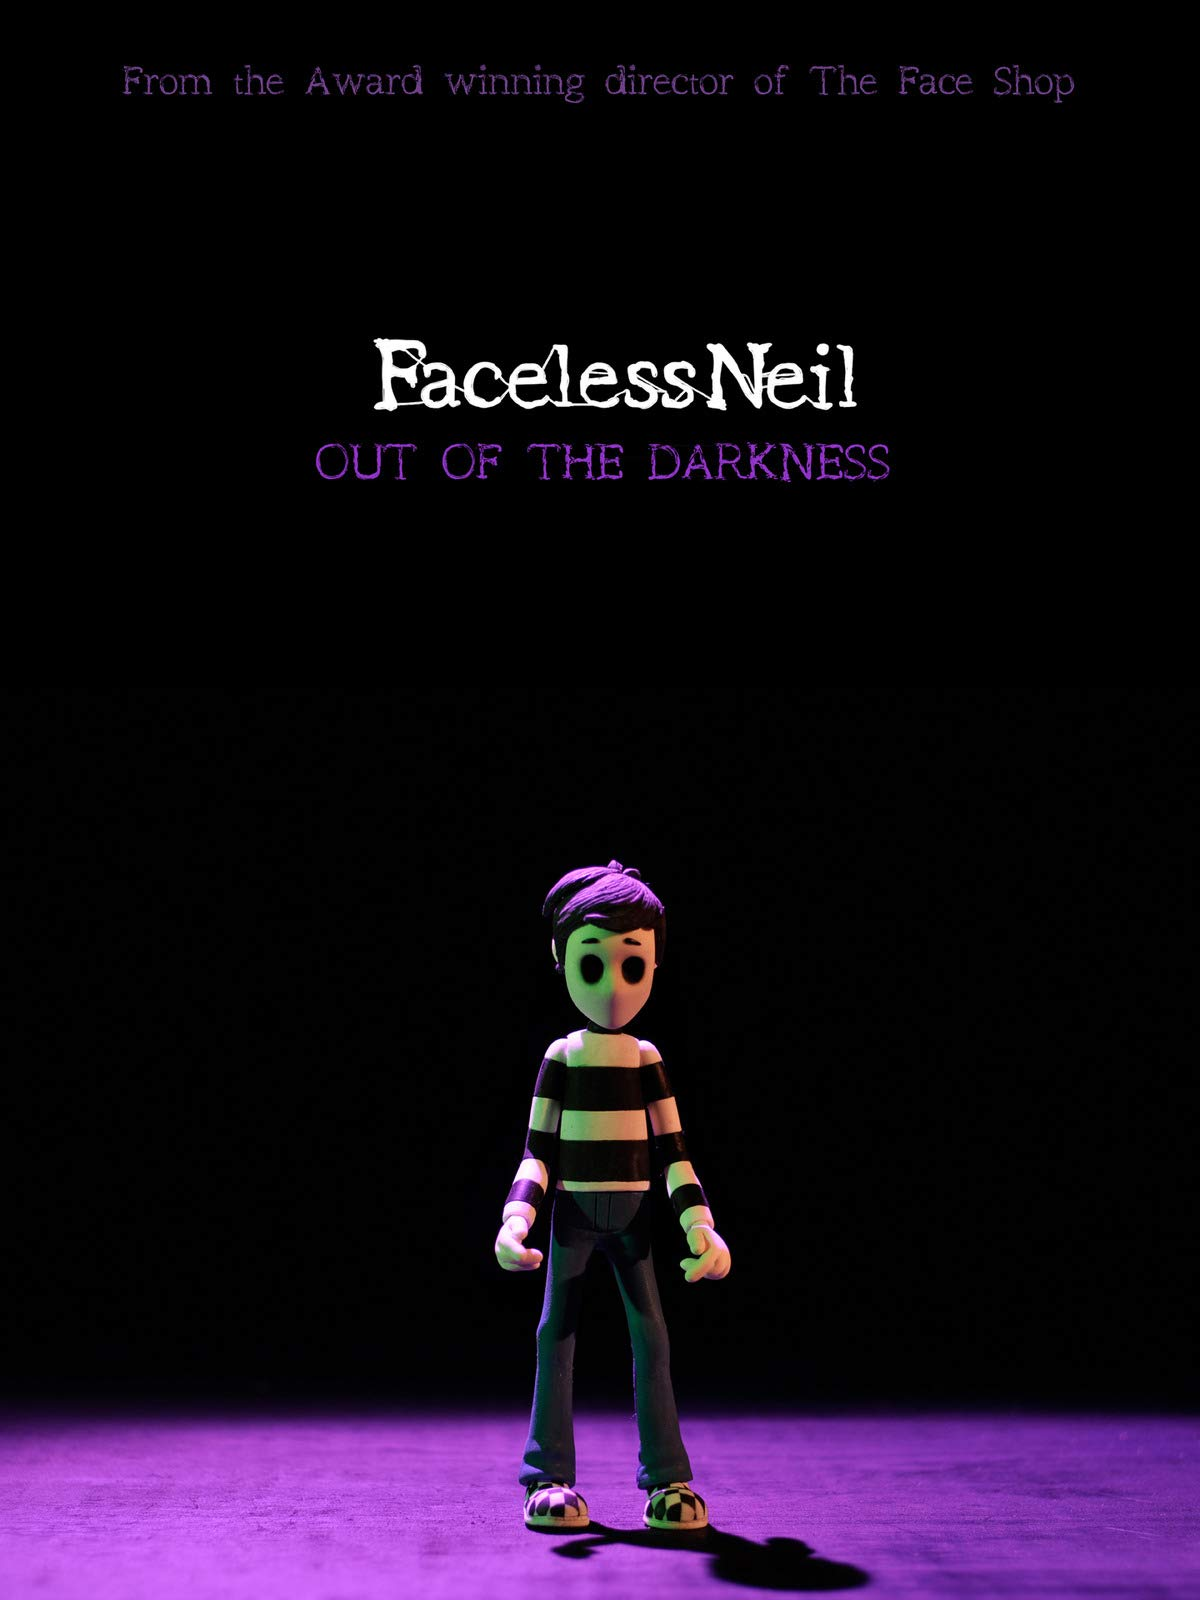 Faceless Neil: Out of the Darkness